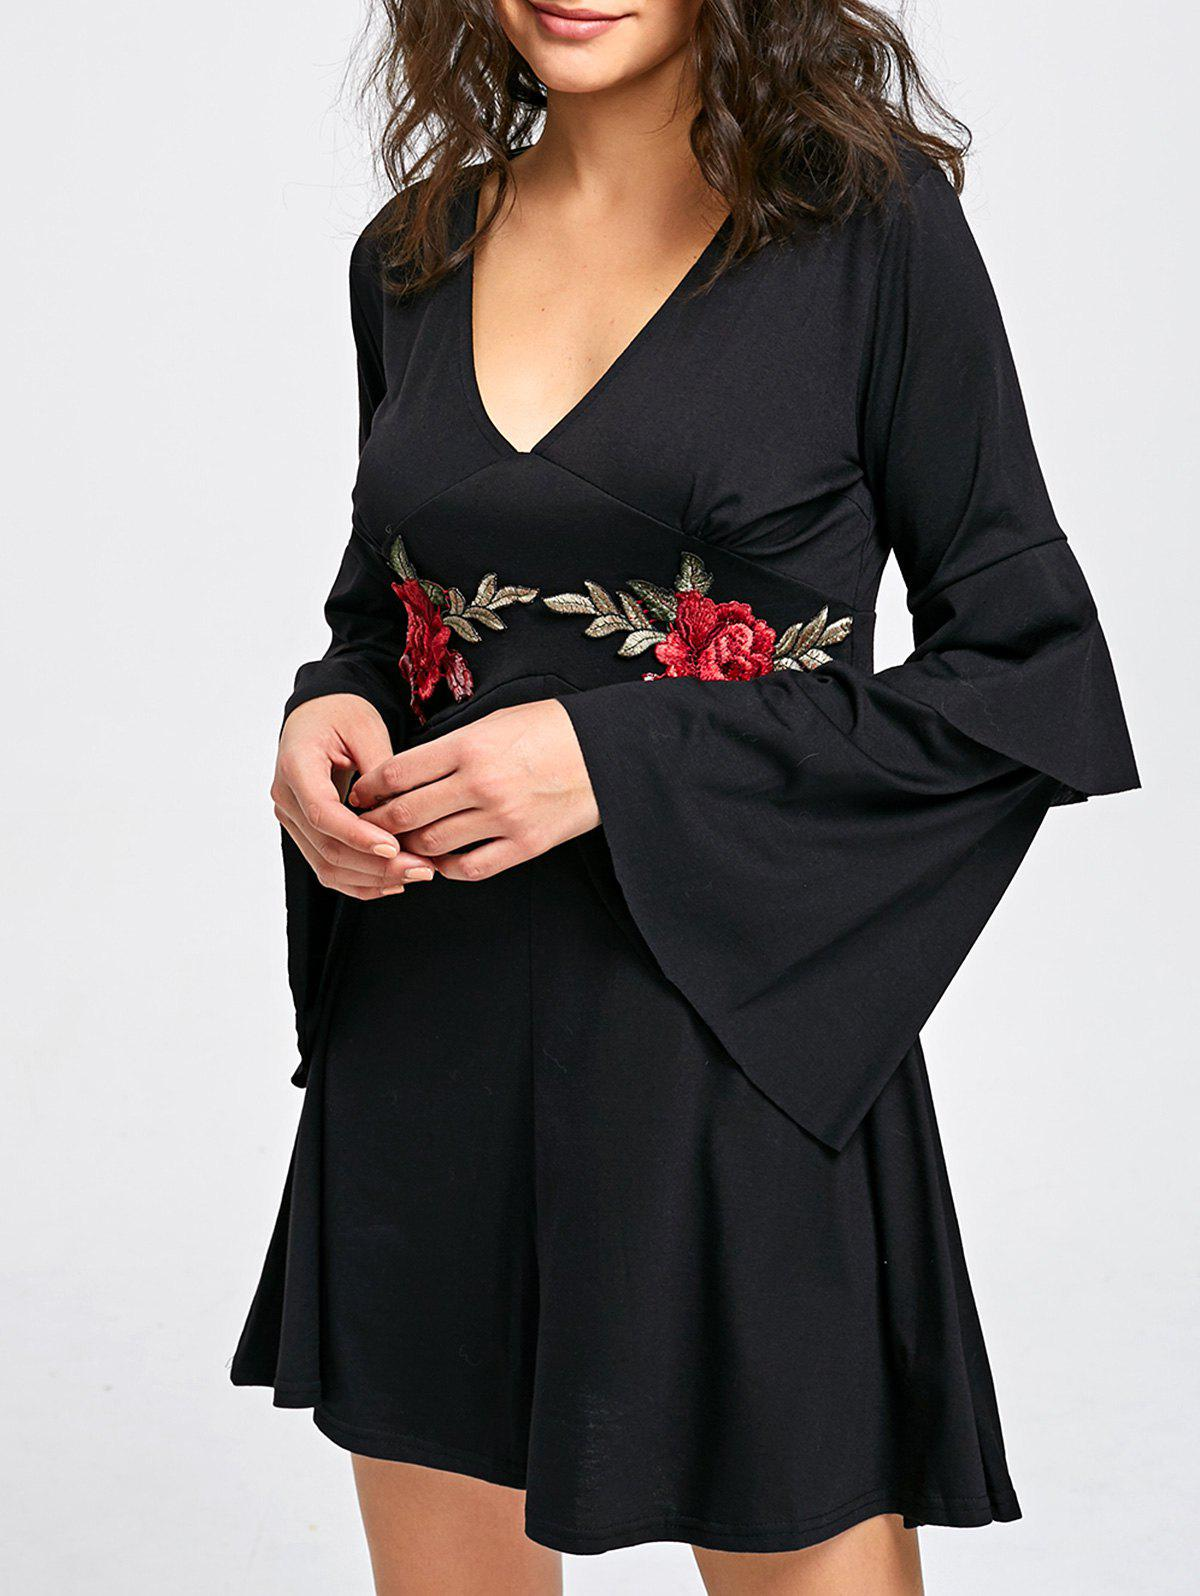 Layered Sleeve V-neck Embroidery Shift Dress - BLACK M